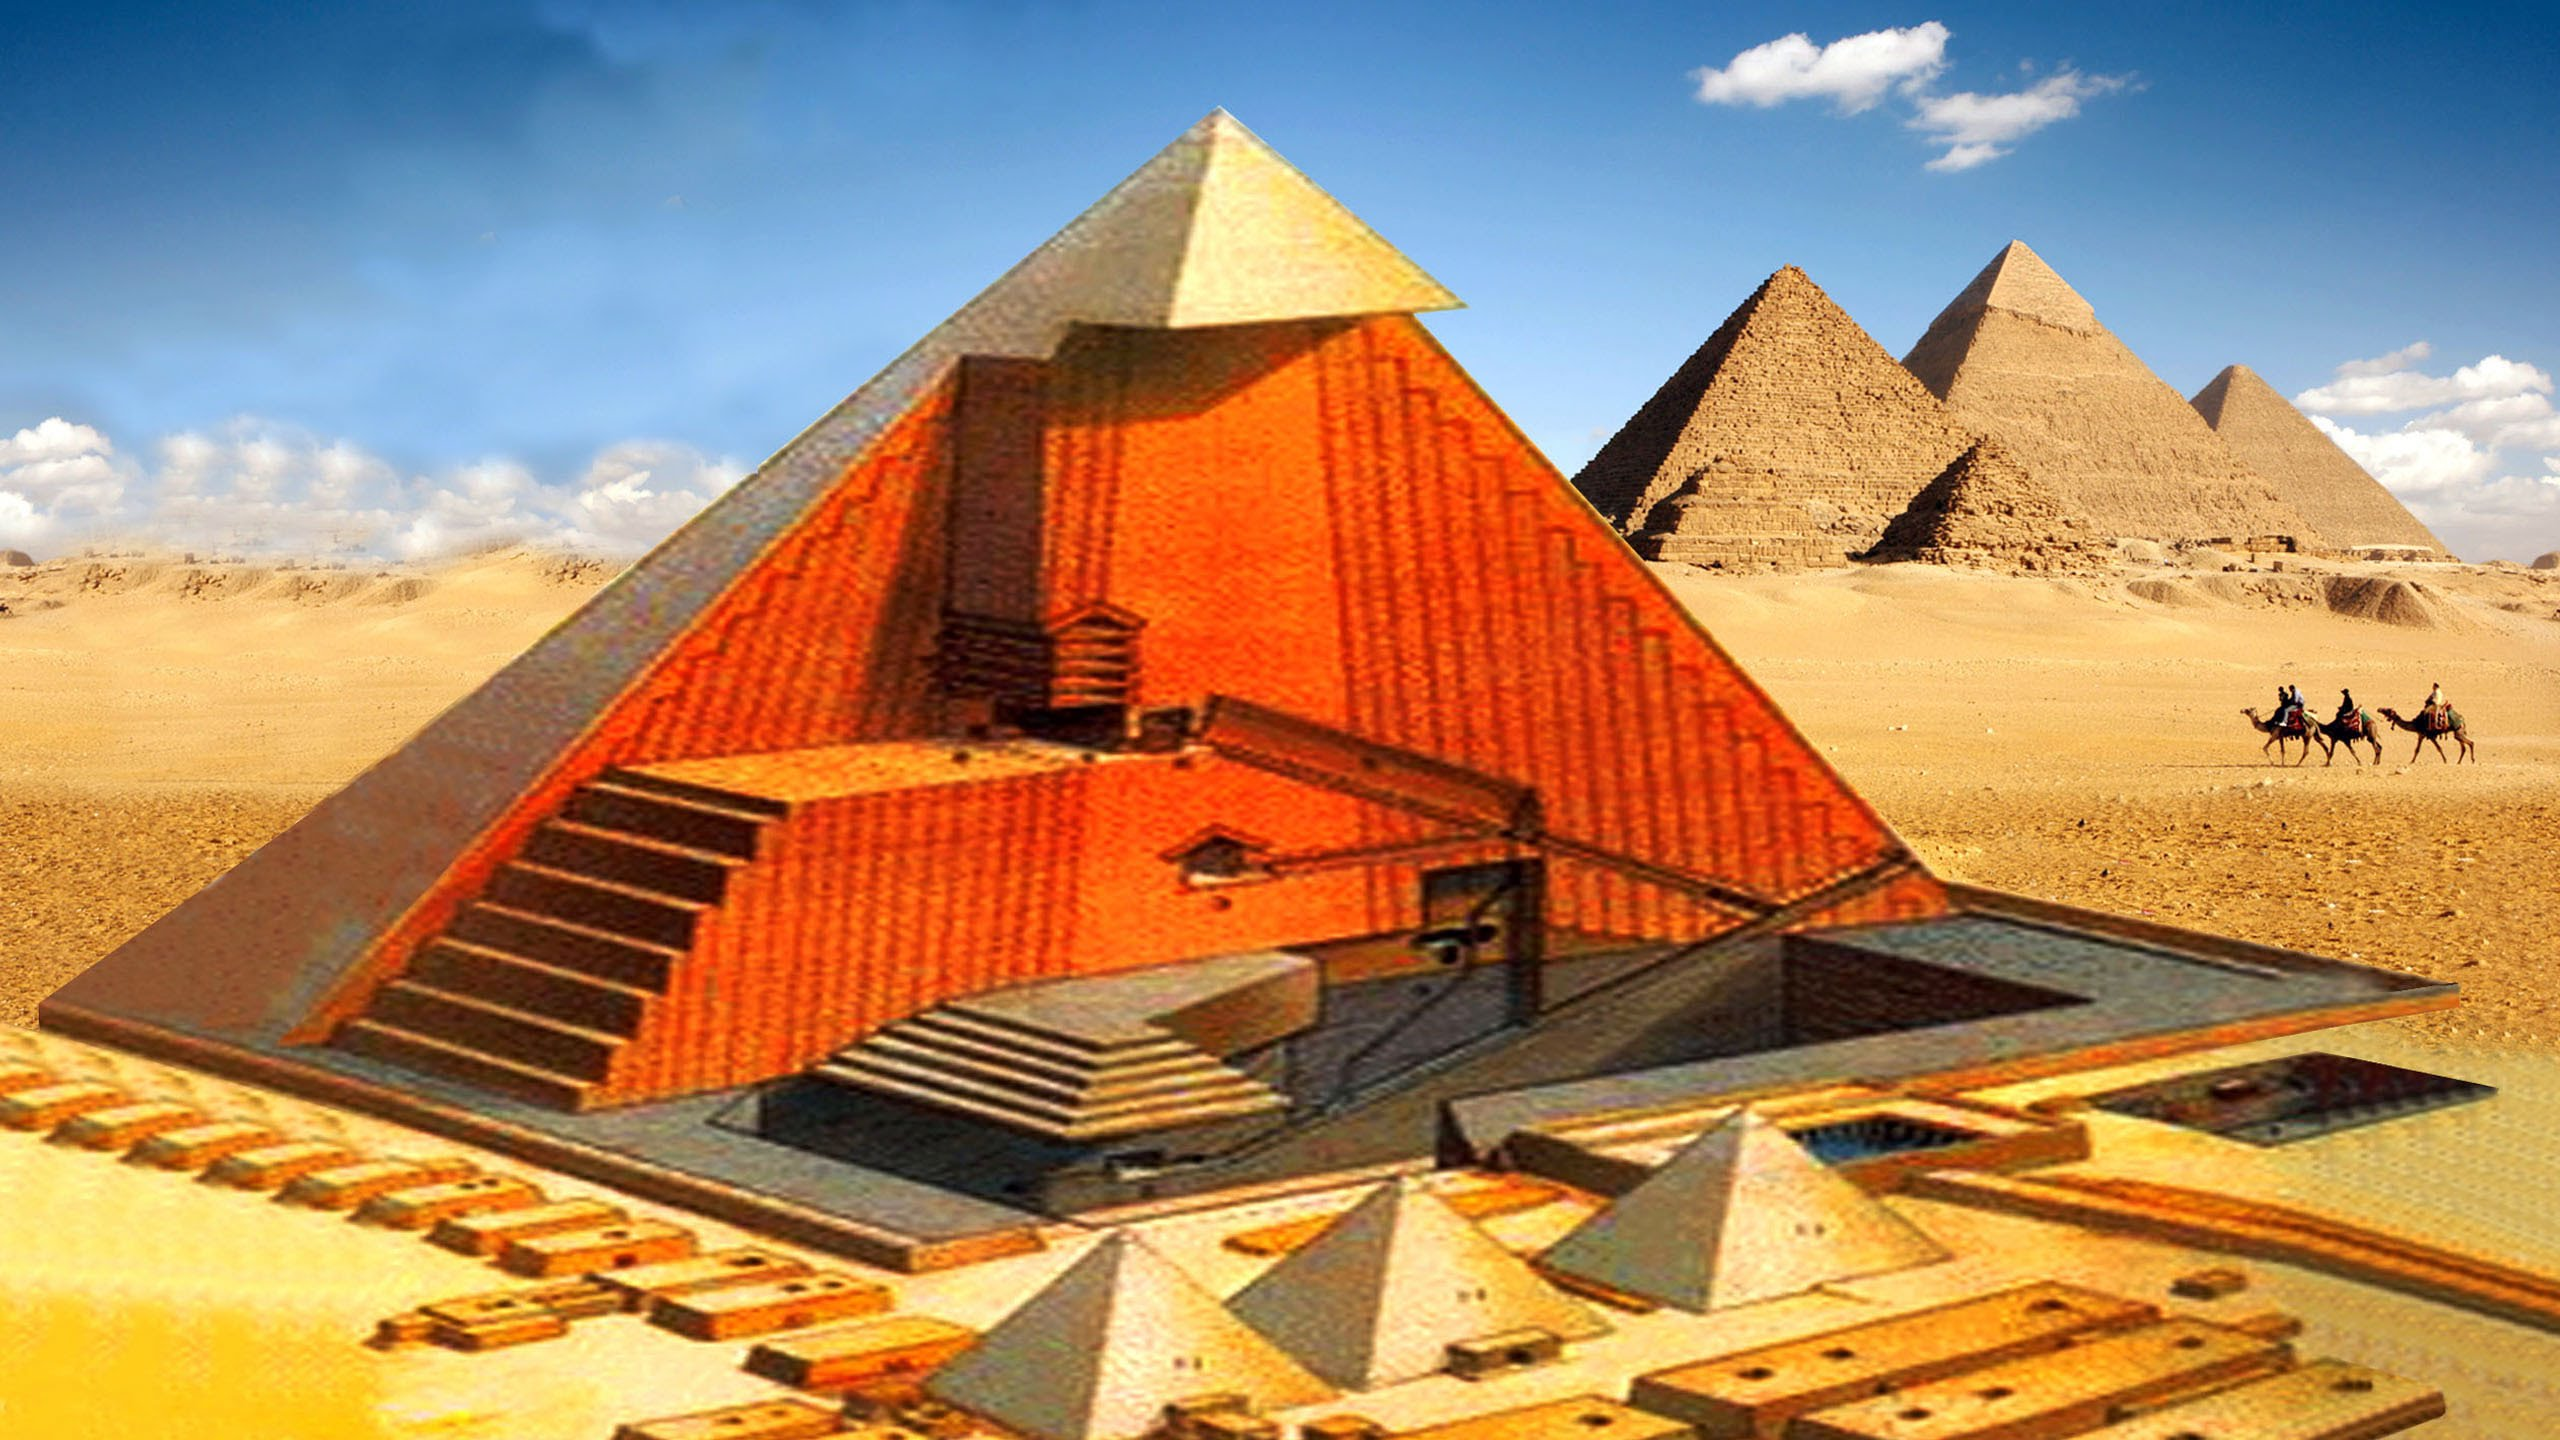 The Great Pyramid of Giza - 25 Great Facts and Mysteries Revealed - YouTube